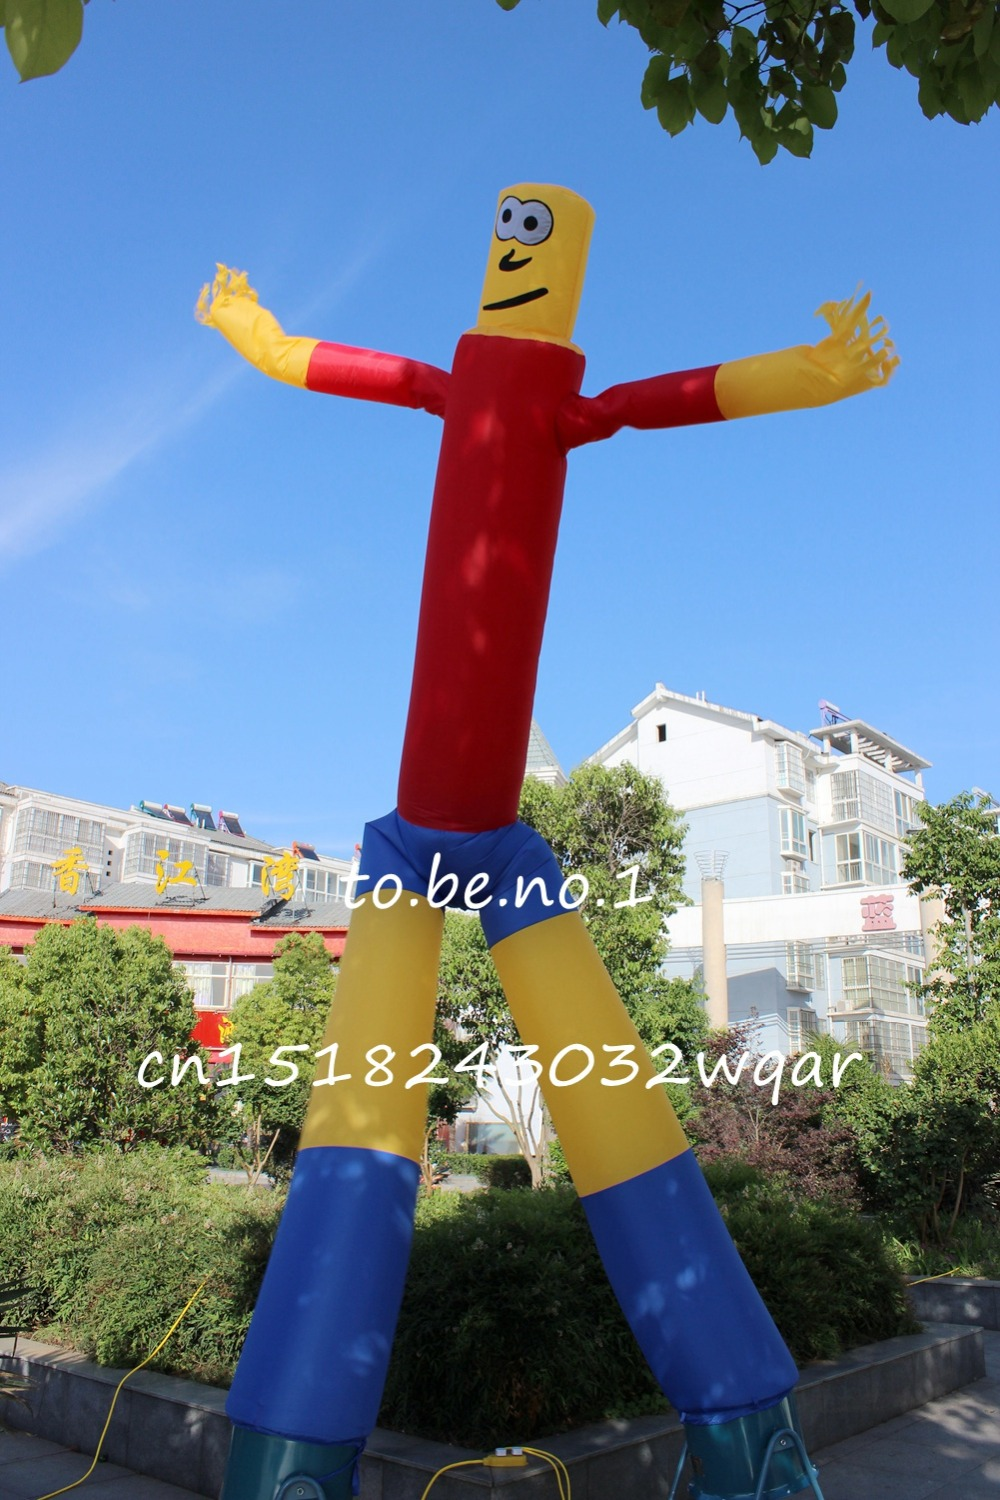 Inflatable Toys 6M 20FT Inflatable Tube Sky Dancer Air Dancer NO blower Inflatable Toys Shop ads sign S1007 ao058m 2m hot selling inflatable advertising helium balloon ball pvc helium balioon inflatable sphere sky balloon for sale